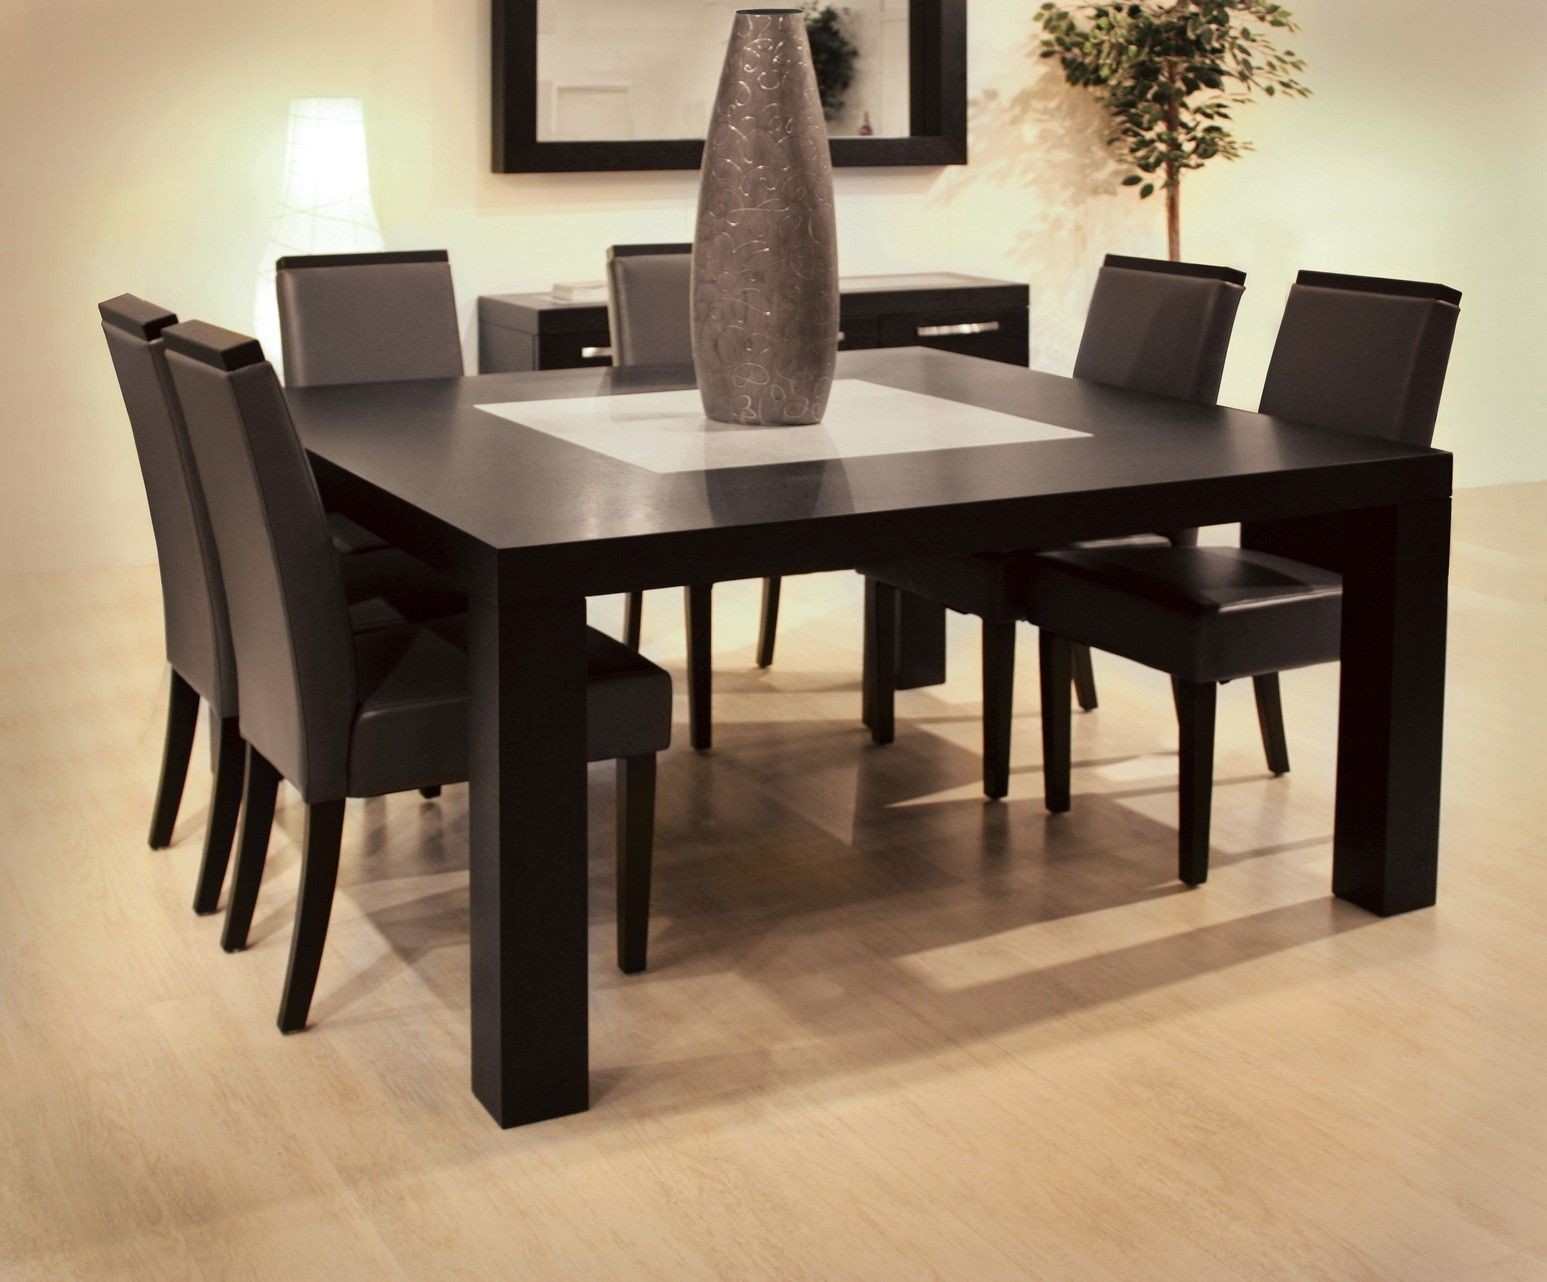 Dining Table Sets Wood Modern | Dining Room | Pinterest | Square ...